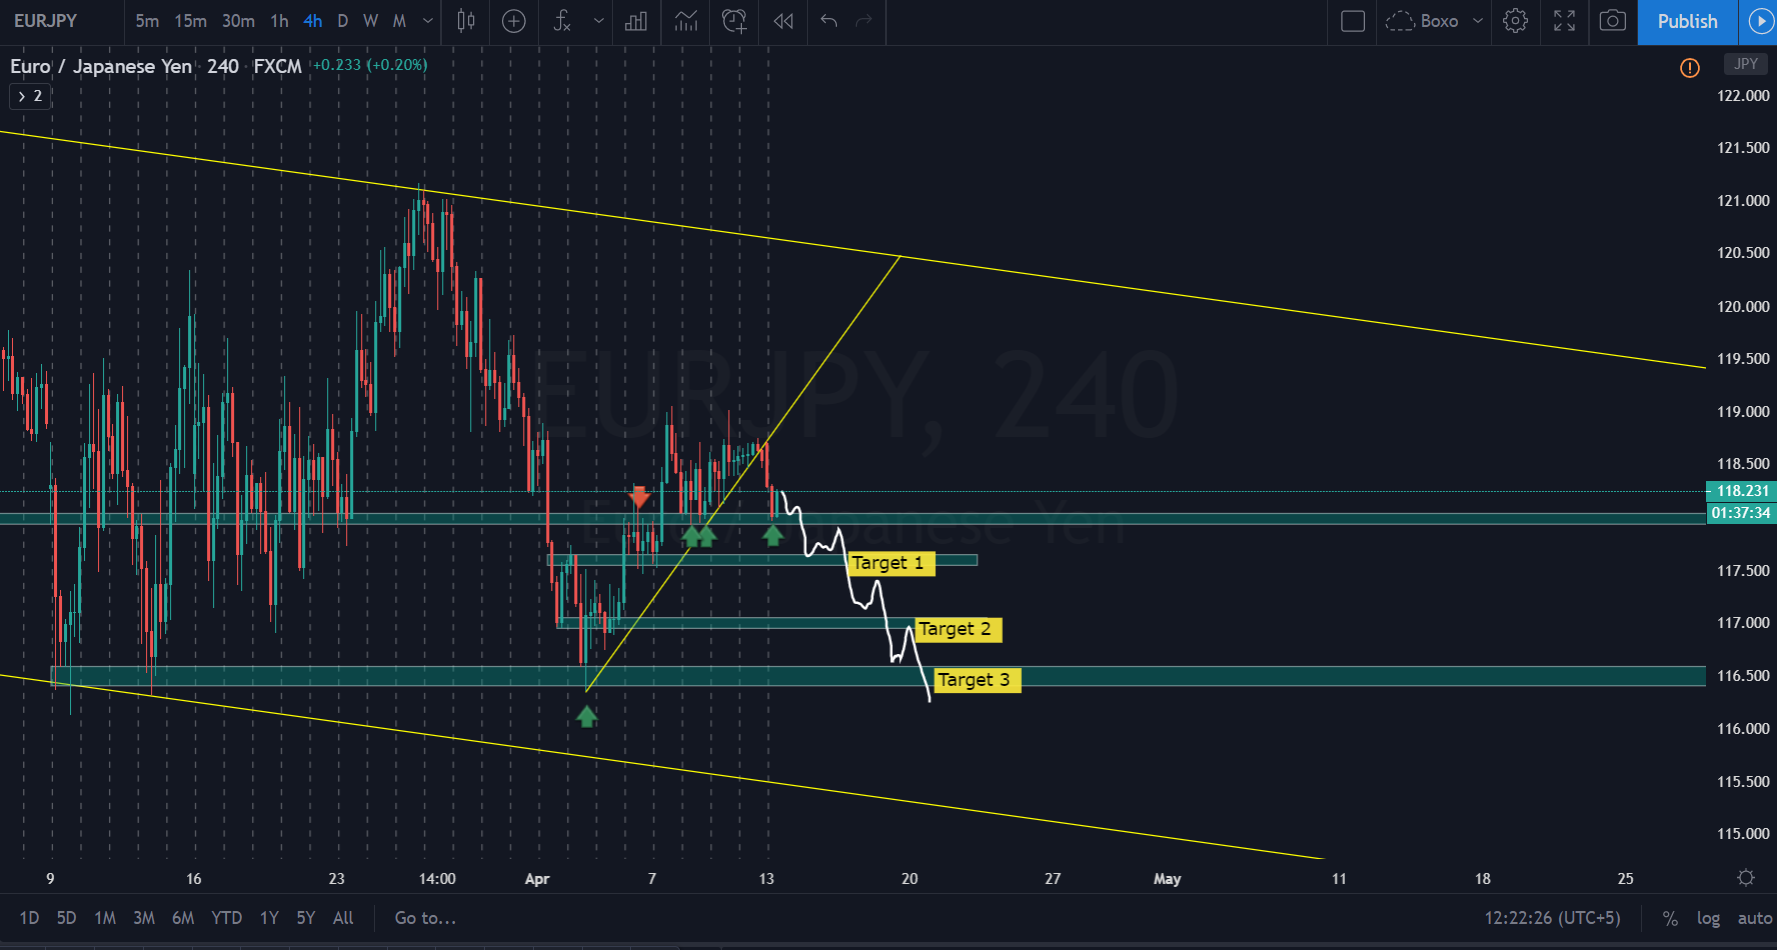 EURJPY – BEFORE LIVE ANALYSIS